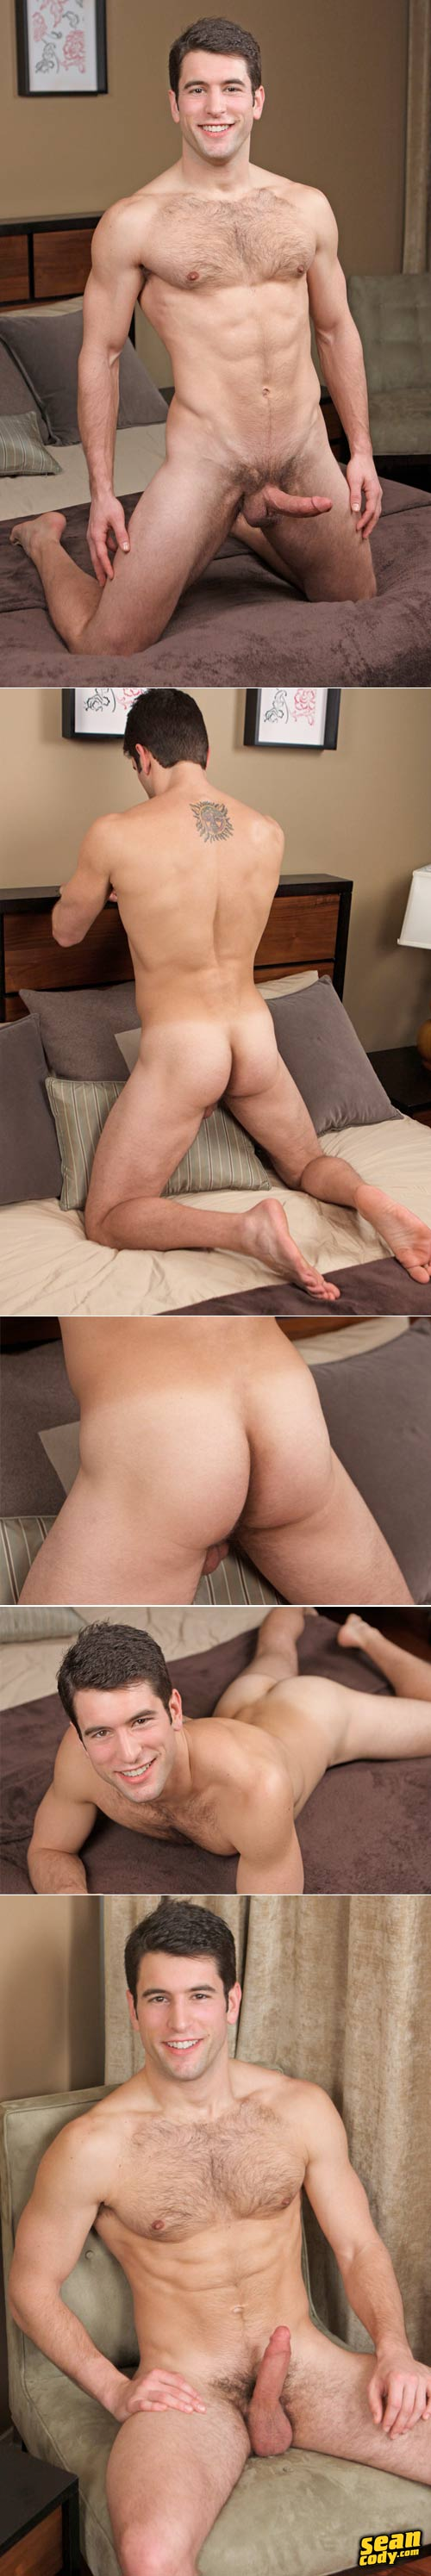 Mark II at SeanCody